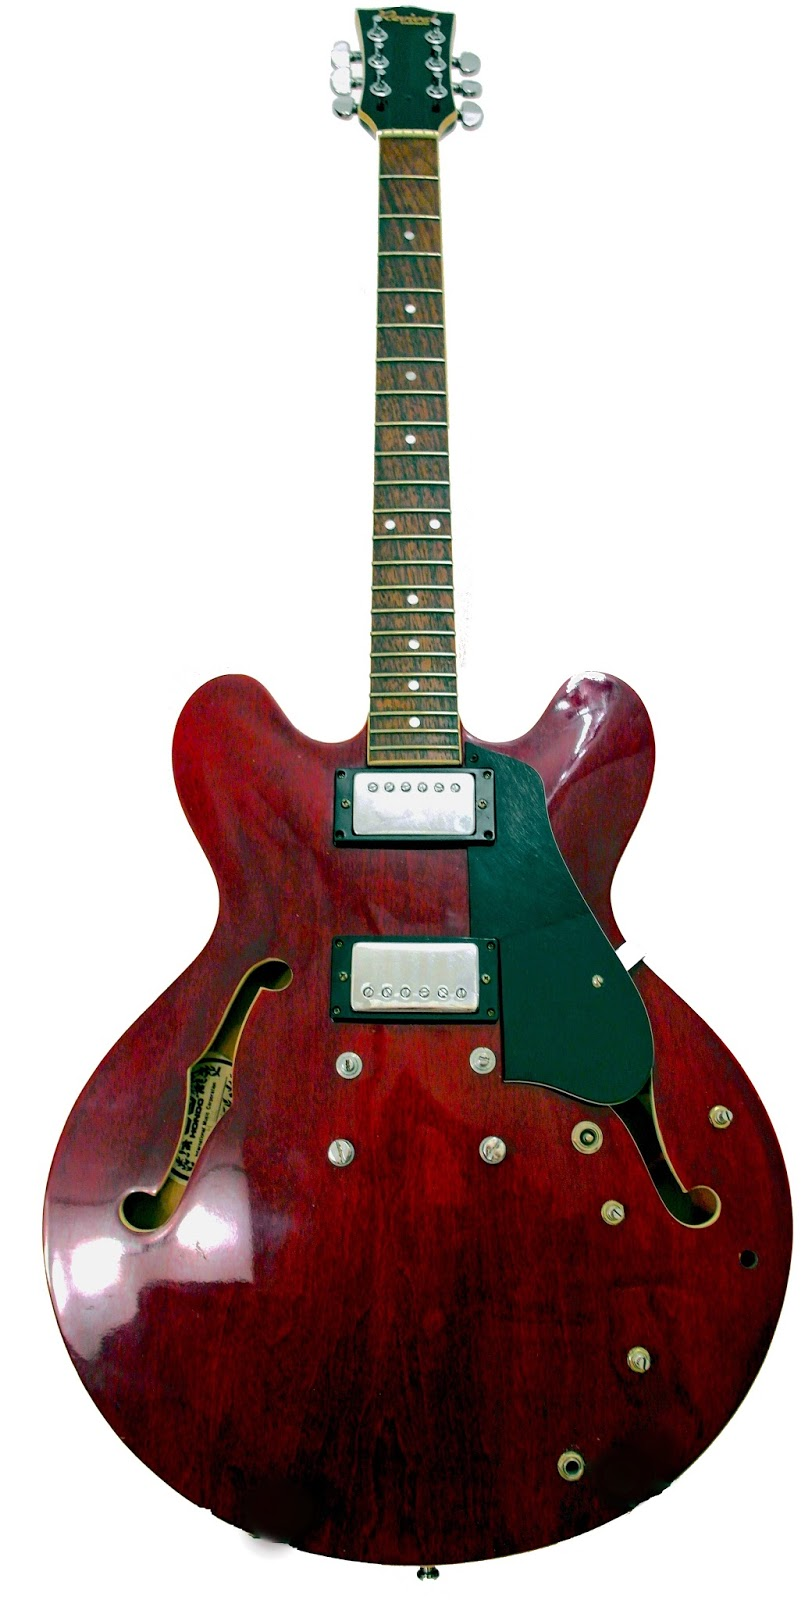 What Hondo Guitar My Knowledge Base For Guitars Audio Systems Also Gibson 335 Wiring Diagrams As Well The Little Information That I Could Find At Time Was Scattered And Often Controversial Apparently 70s 80s Industry Hadnt Yet Grown To Idea